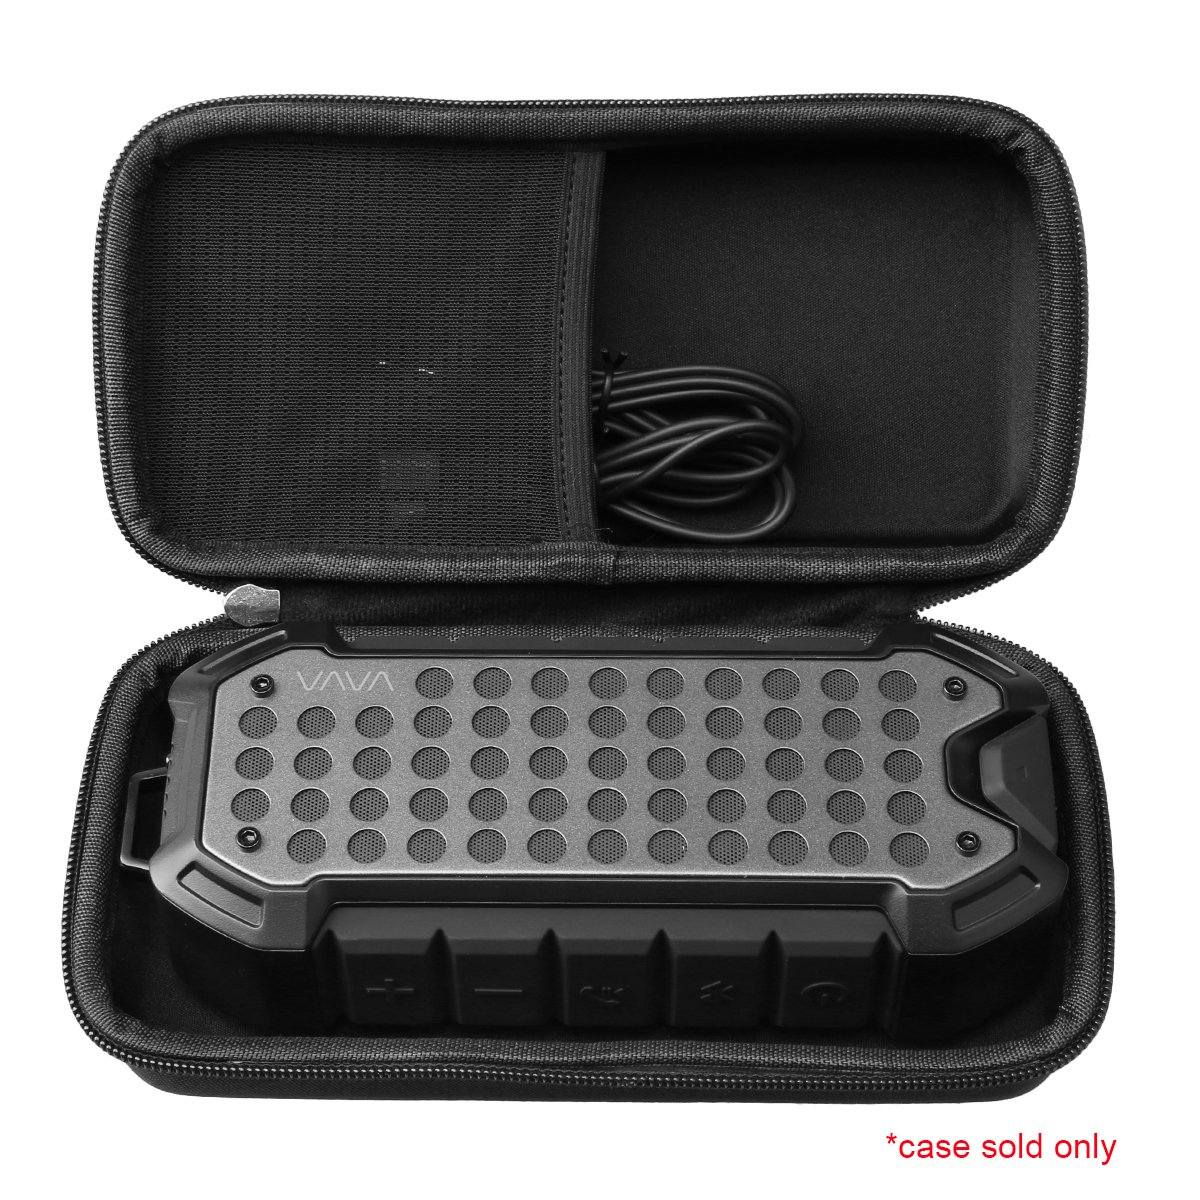 Hard Carrying Travel Case for VAVA Outdoor Rugged Wireless Bluetooth Portable Speakers by Aproca